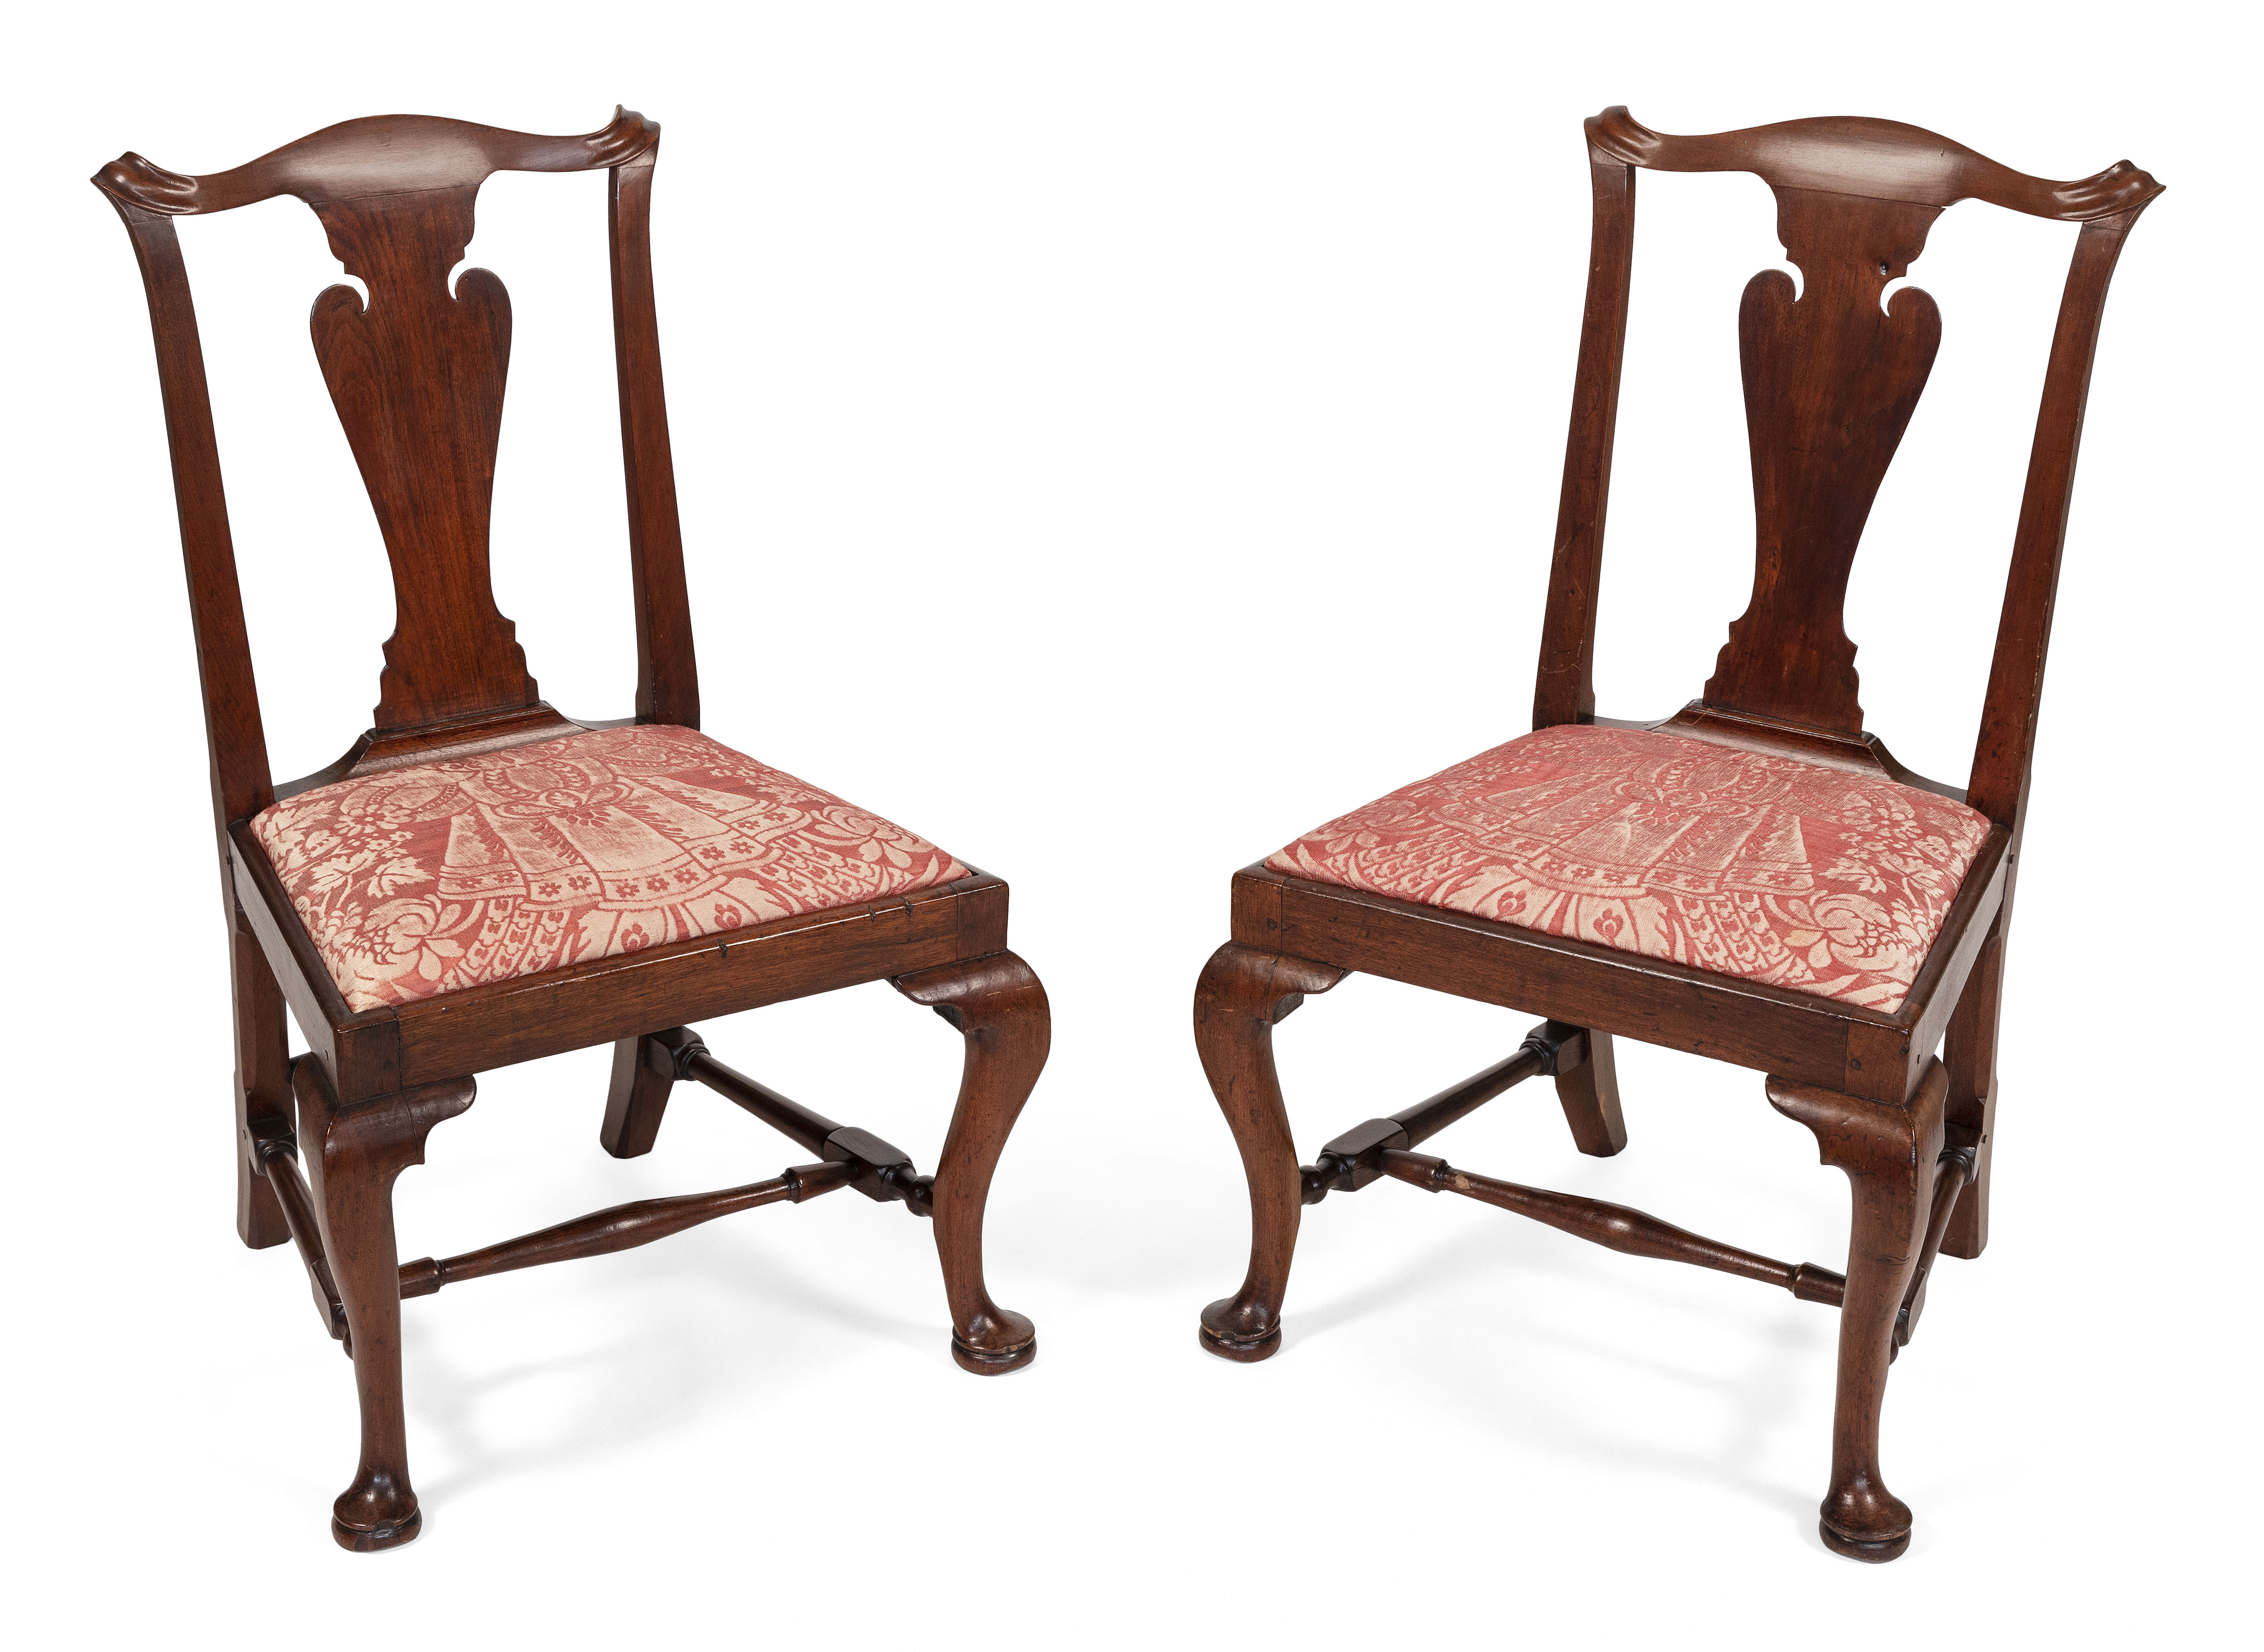 PAIR OF QUEEN ANNE TRANSITIONAL SIDE CHAIRS Eastern Massachusetts, Circa 1770 Back heights 37.5